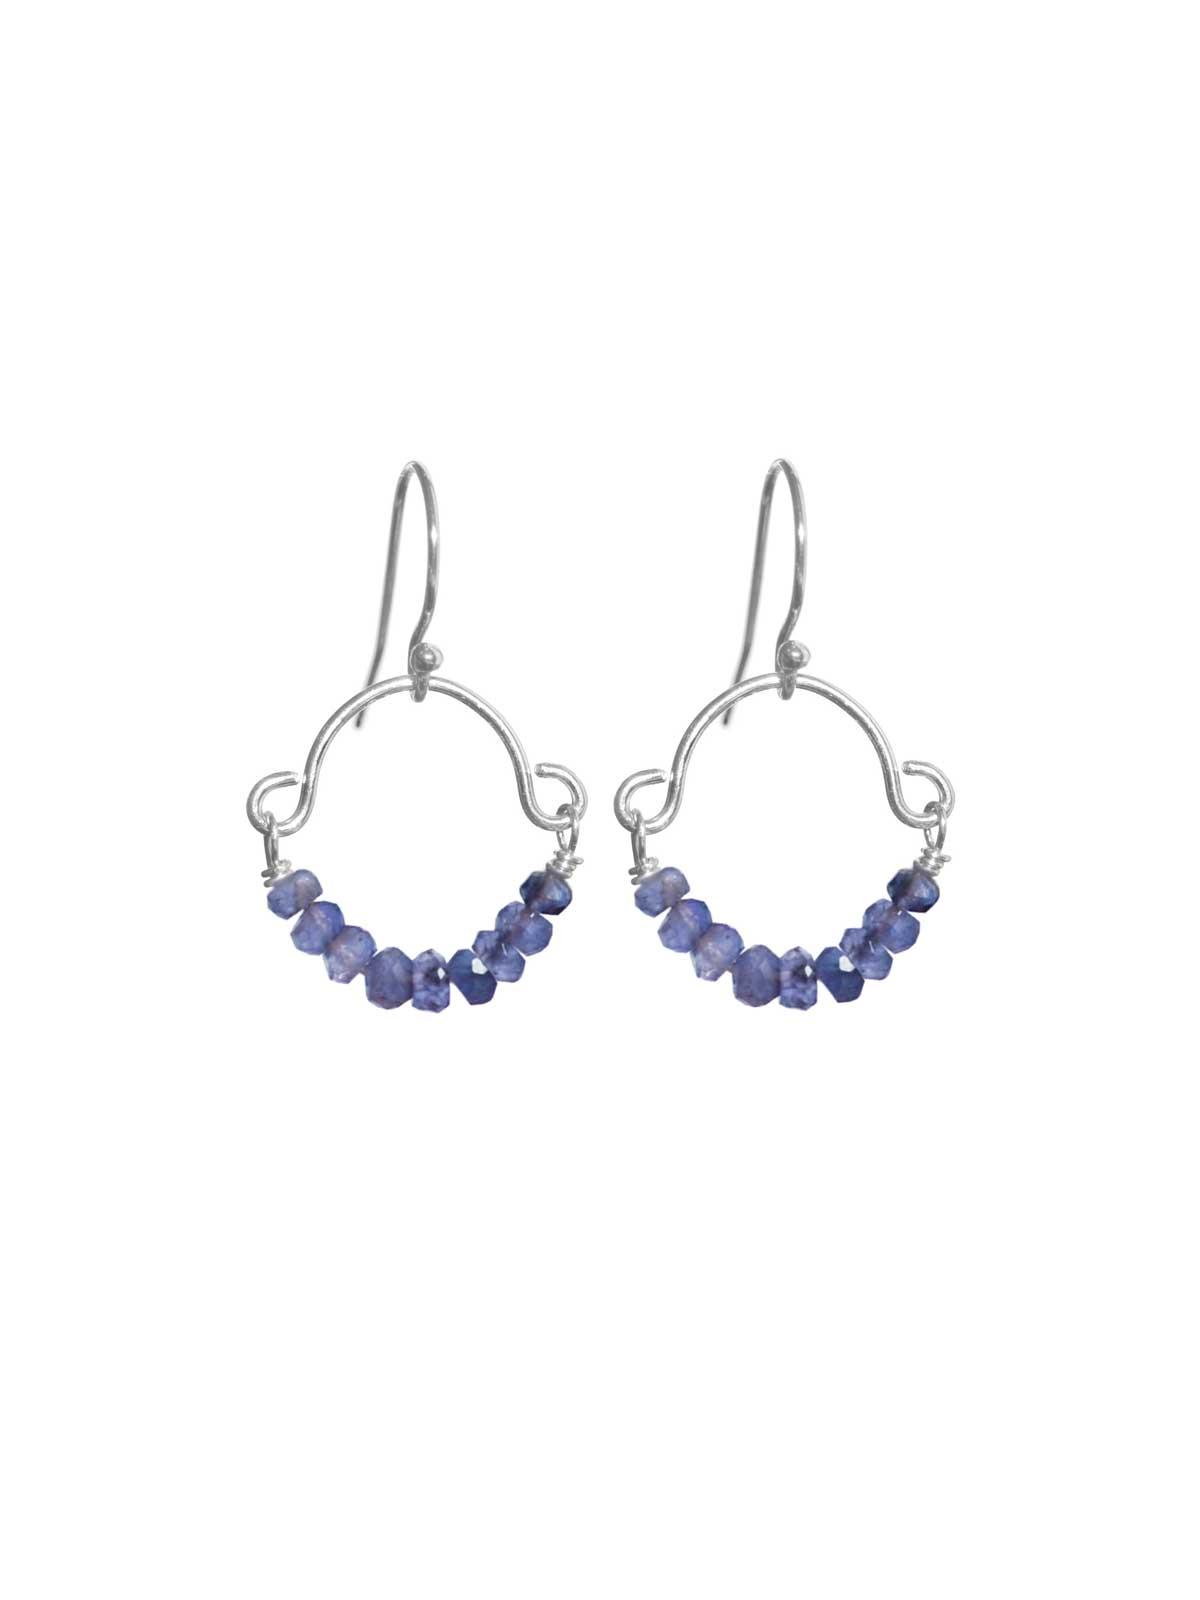 Earrings in Sterling Silver with faceted Iolite